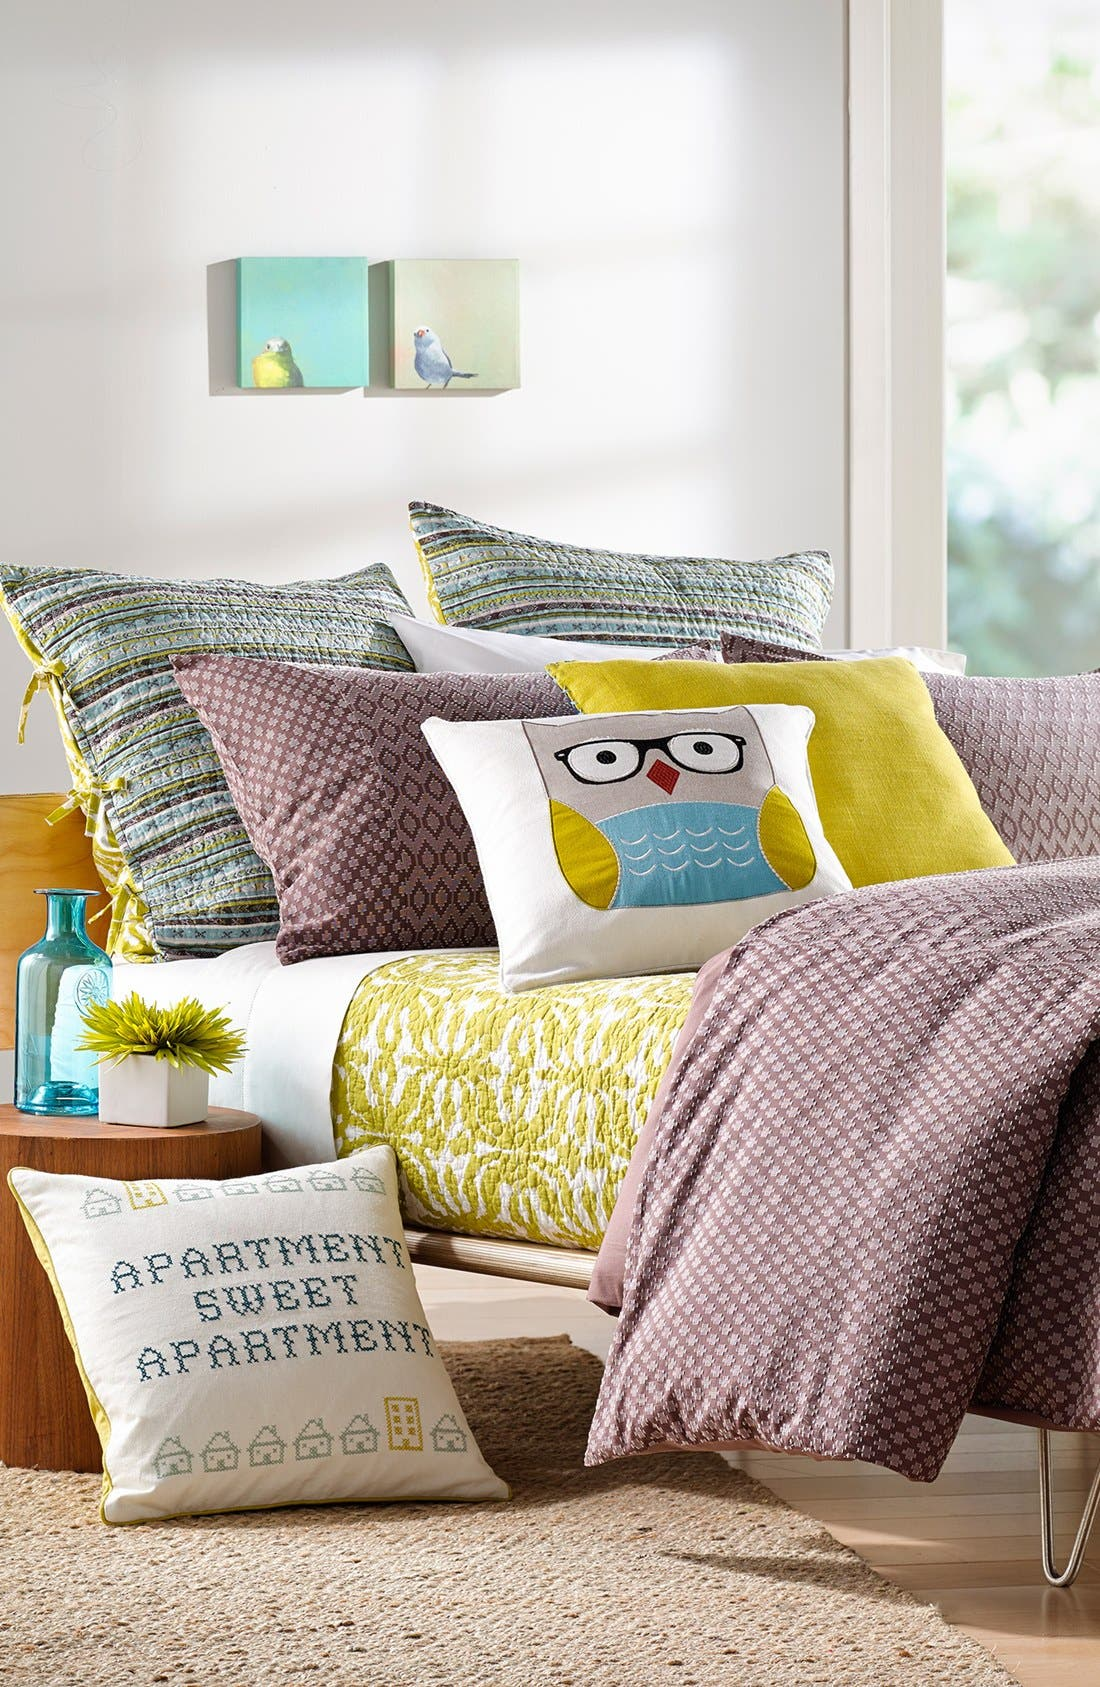 'Owl with Glasses' Accent Pillow,                             Alternate thumbnail 2, color,                             Blue/Green Multi